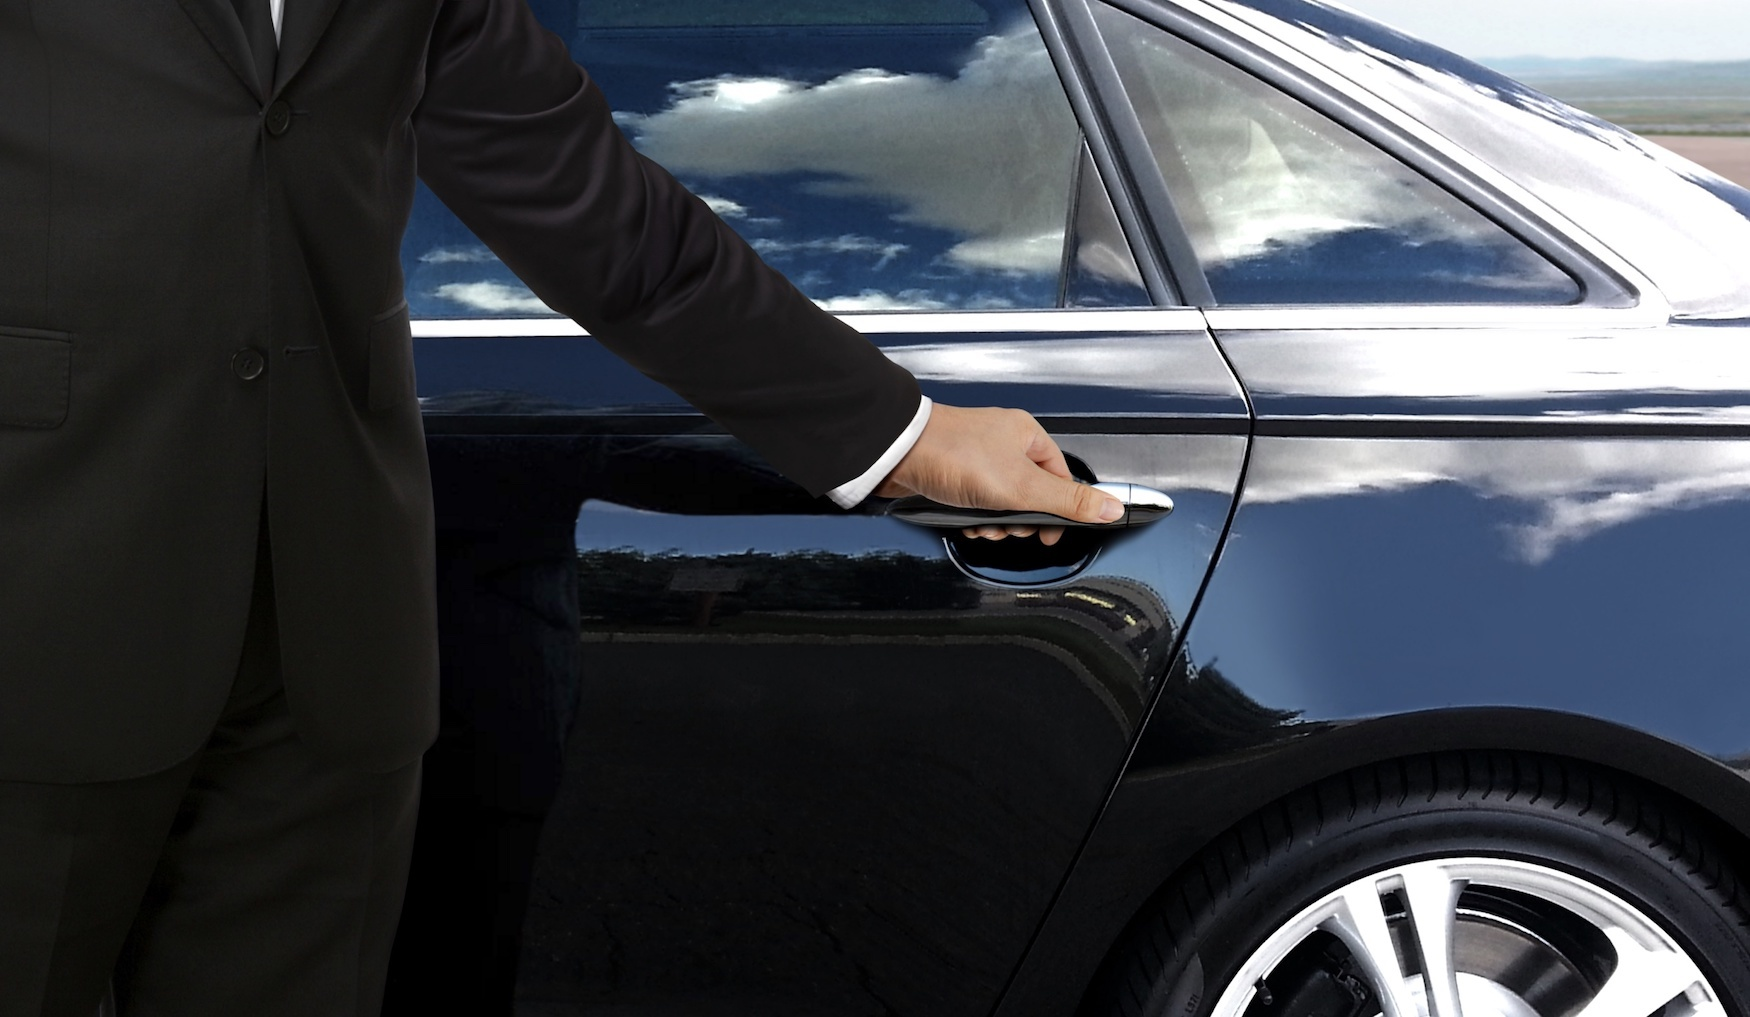 Chauffer black car door cybersecurity for VIPs rx